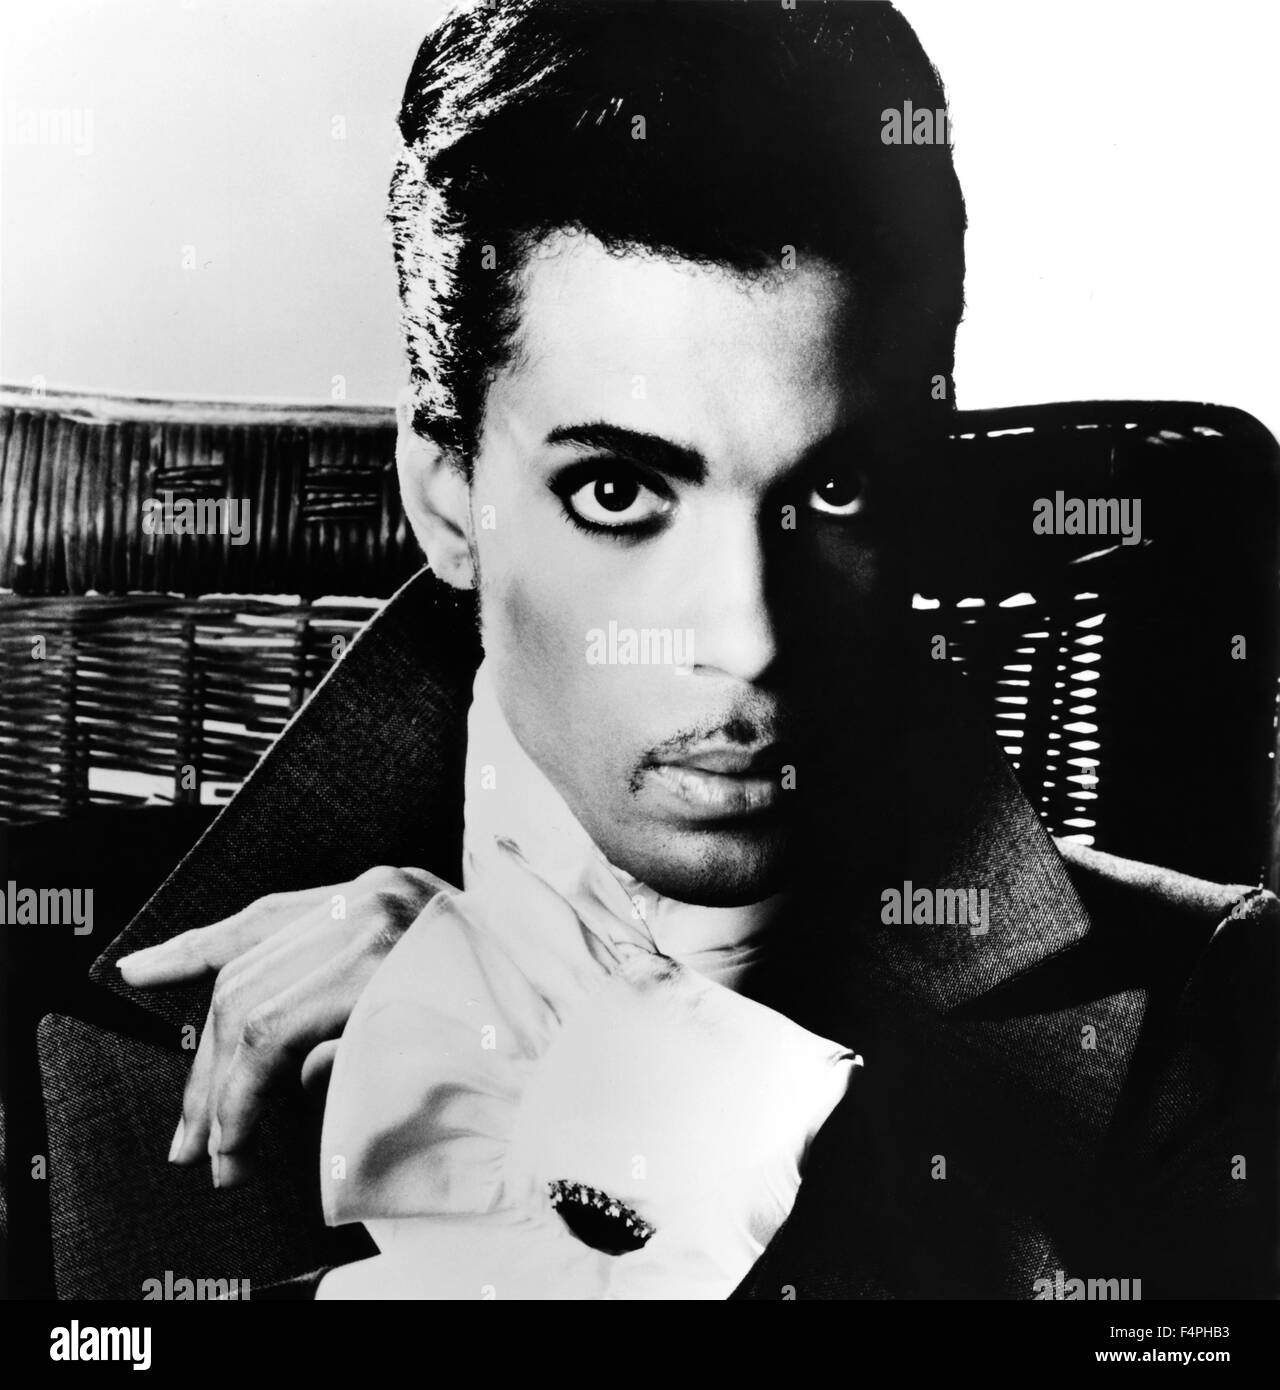 Prince / Under the Cherry Moon / 1986 directed by Prince